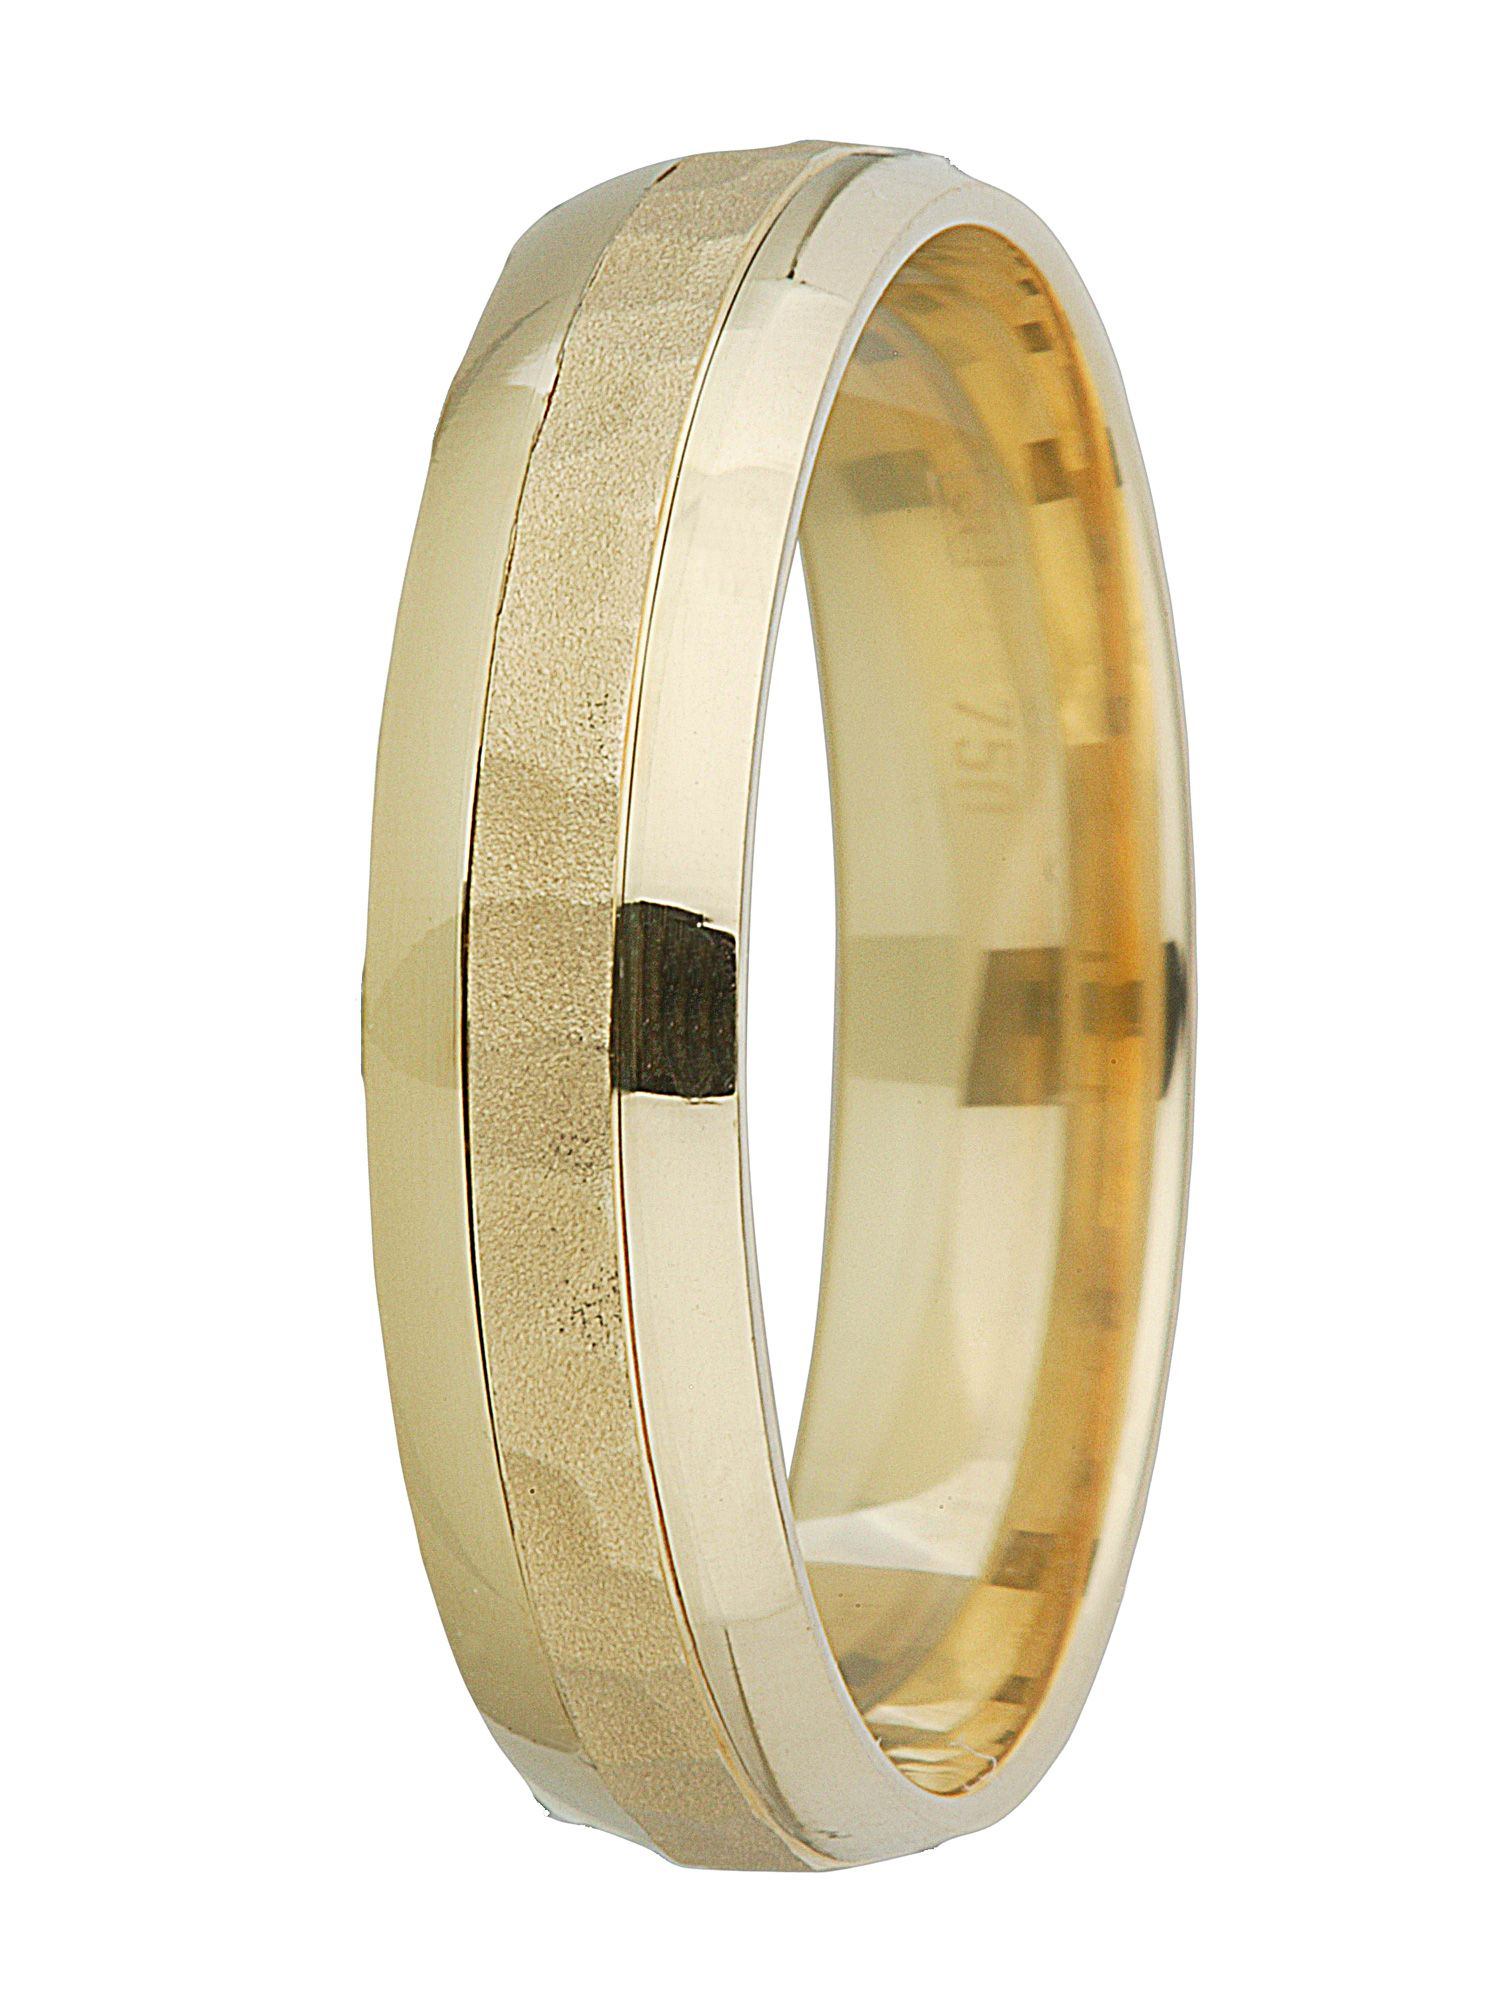 Gents 18ct gold hammered finish wedding band - Gold